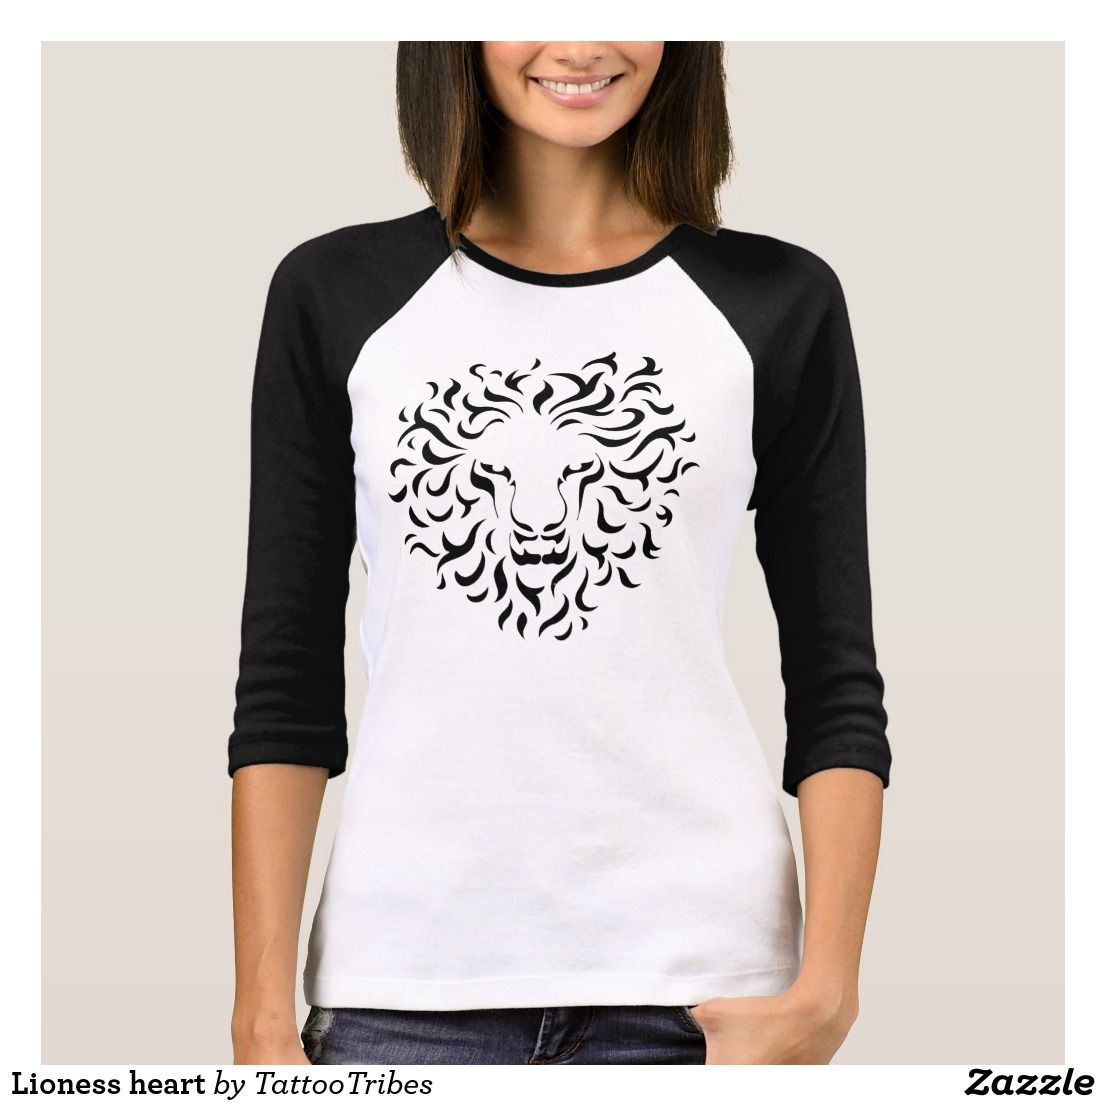 Create your own designs amp sell your design online shirts zazzle - Lioness Heart T Shirt